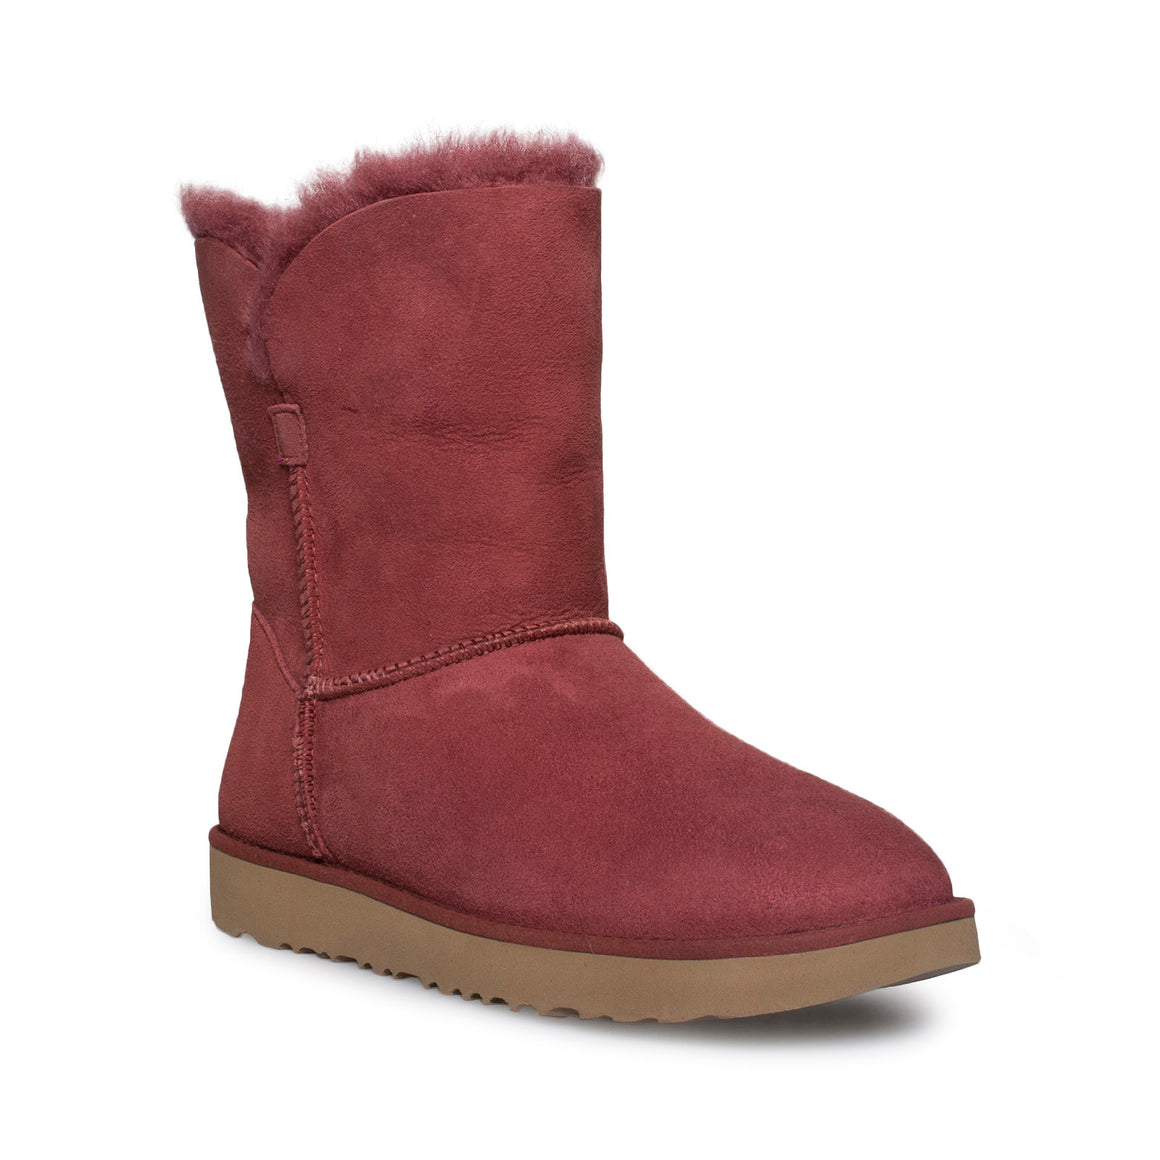 UGG Classic Cuff Short Red Clay Boots